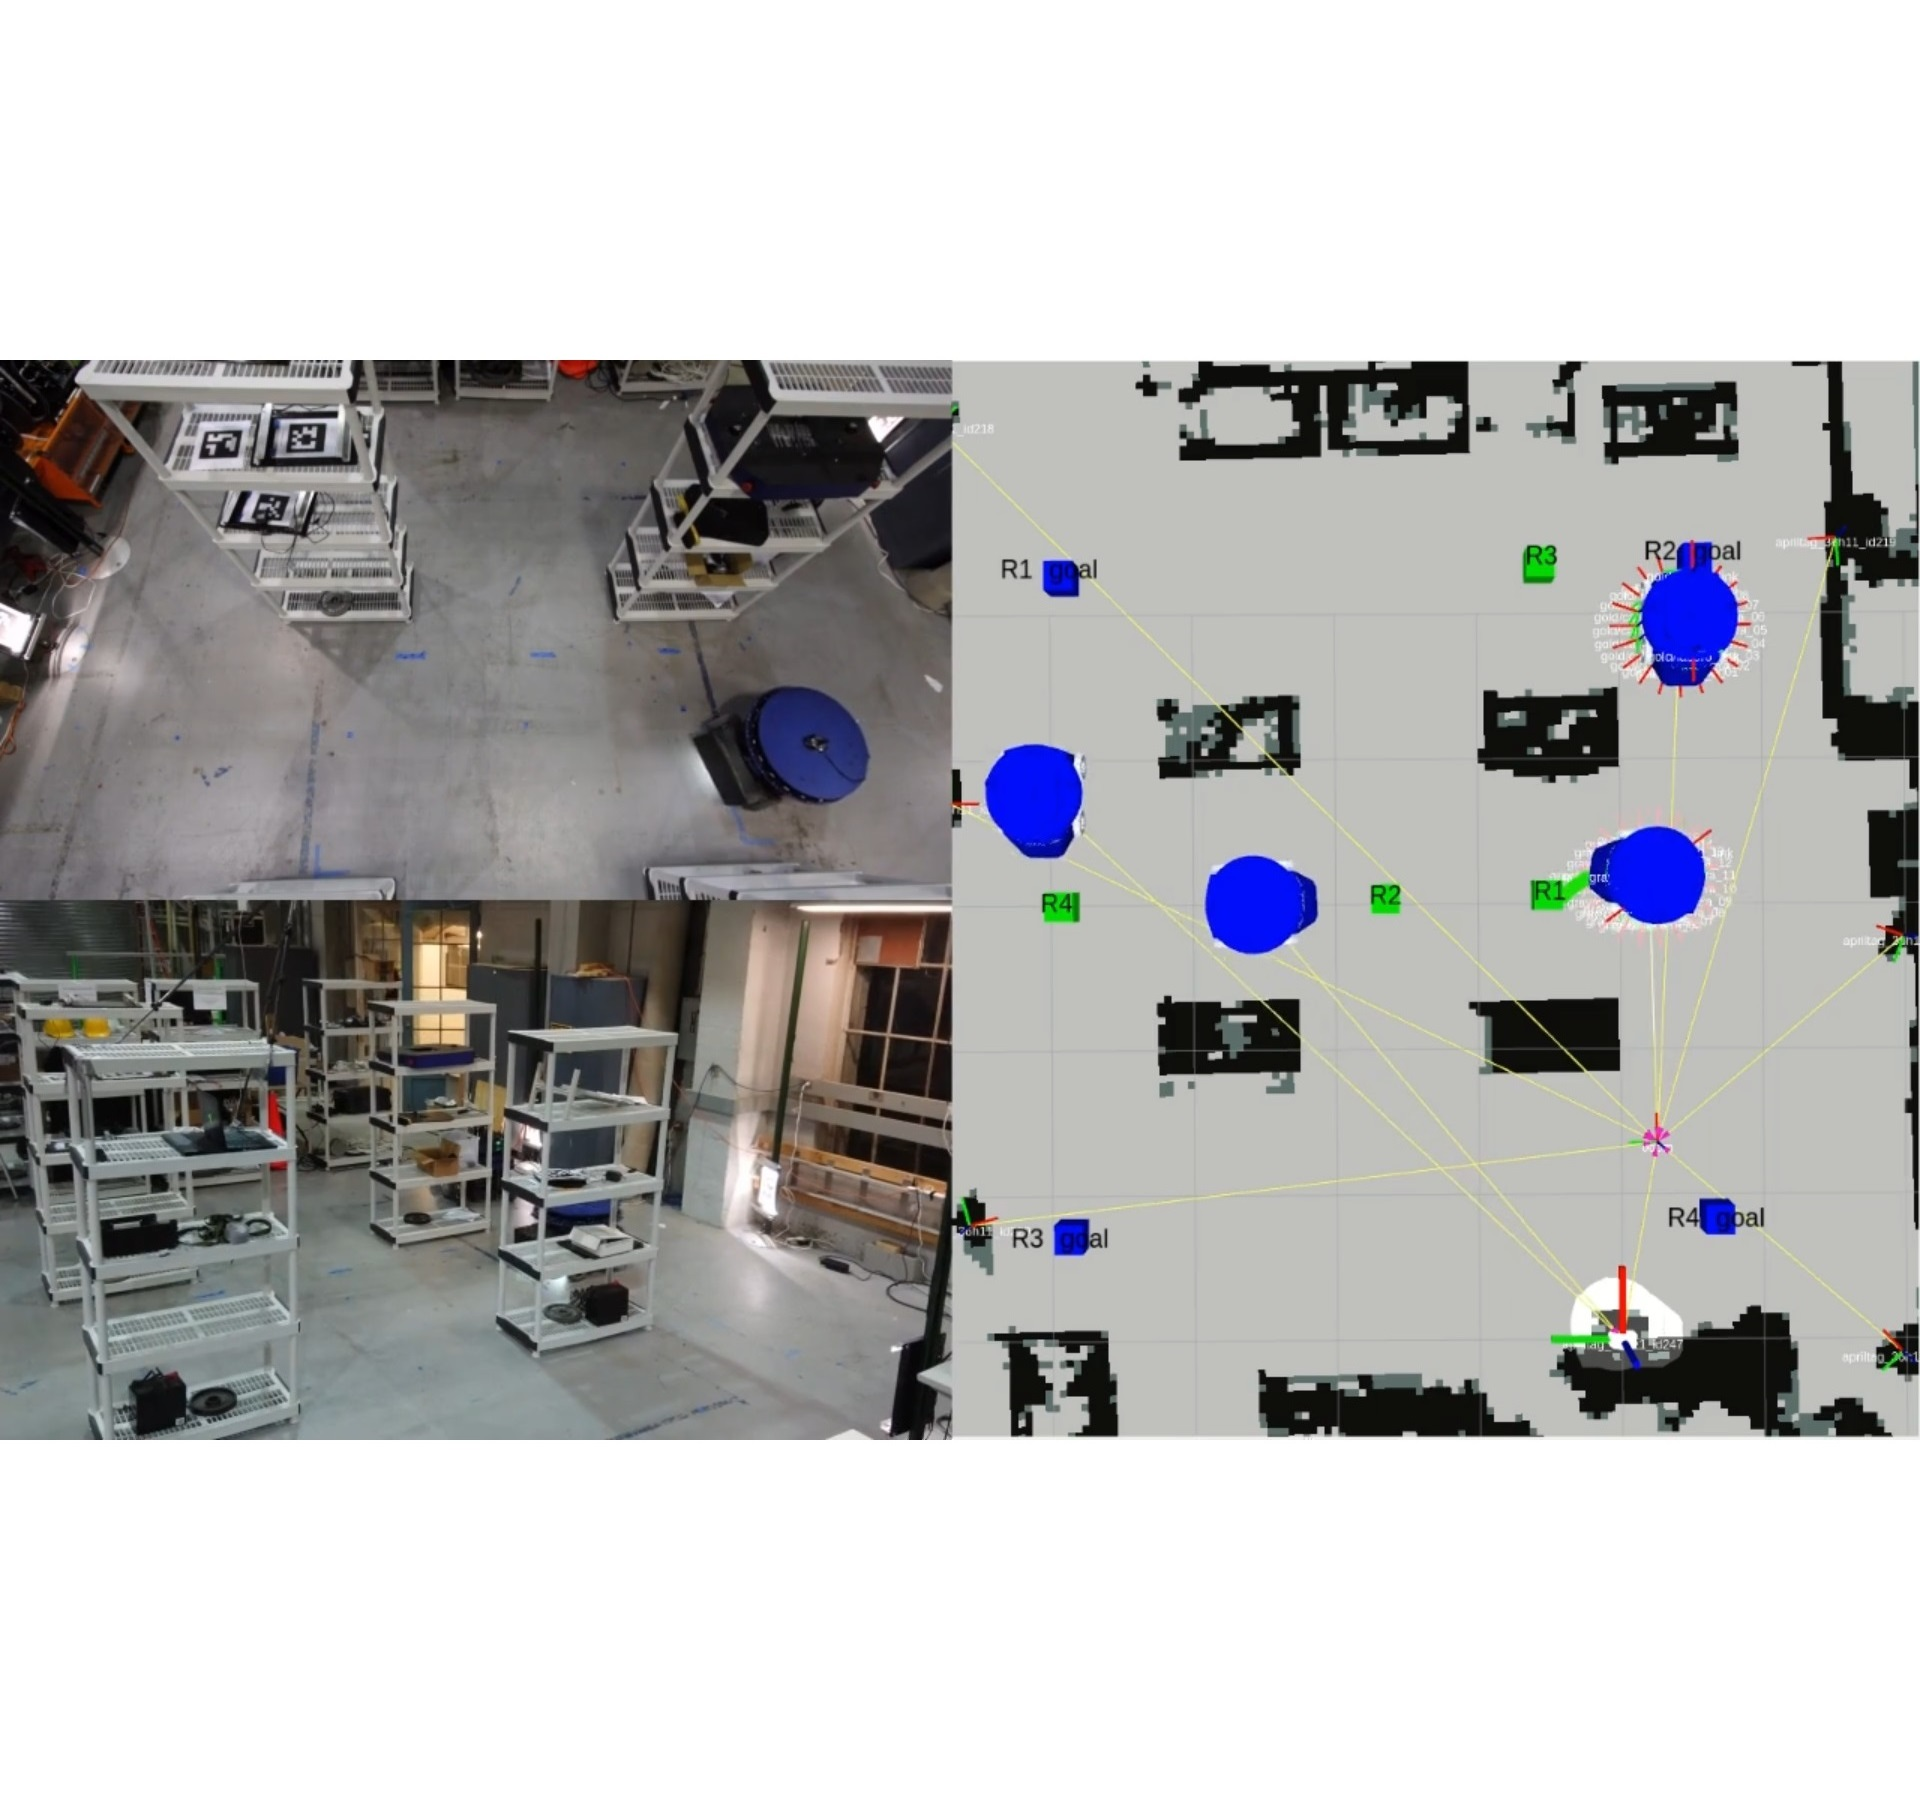 Multi-robot path planning in factory-like environments